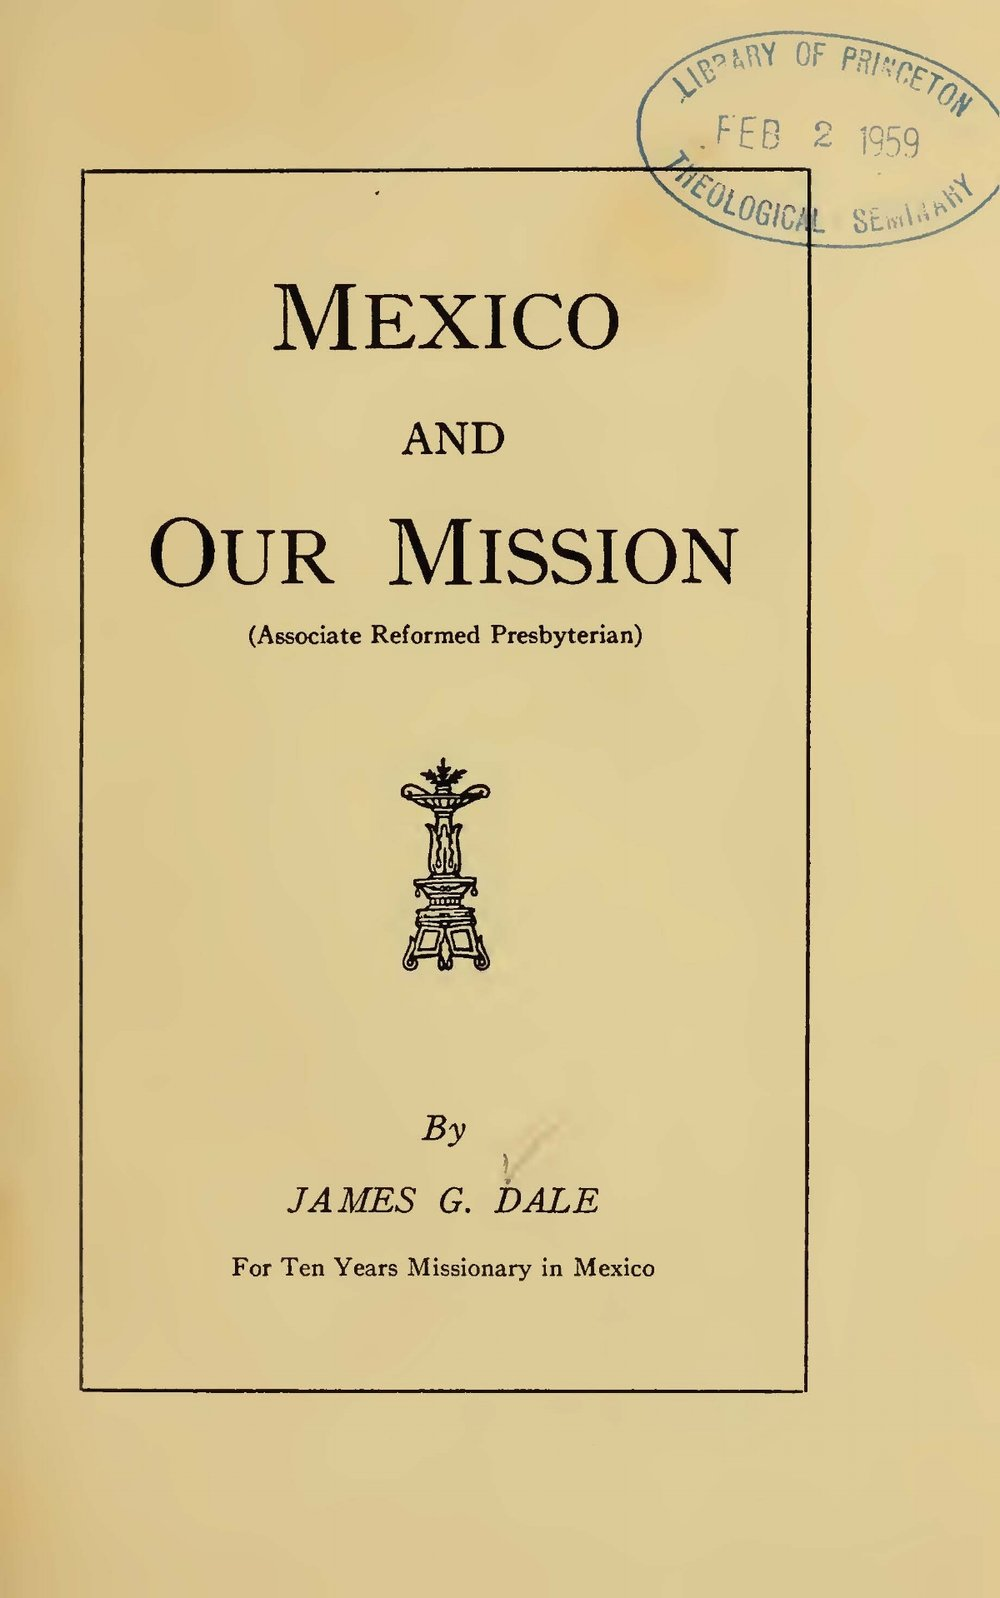 Dale, James Gary, Mexico and Our Mission Title Page.jpg